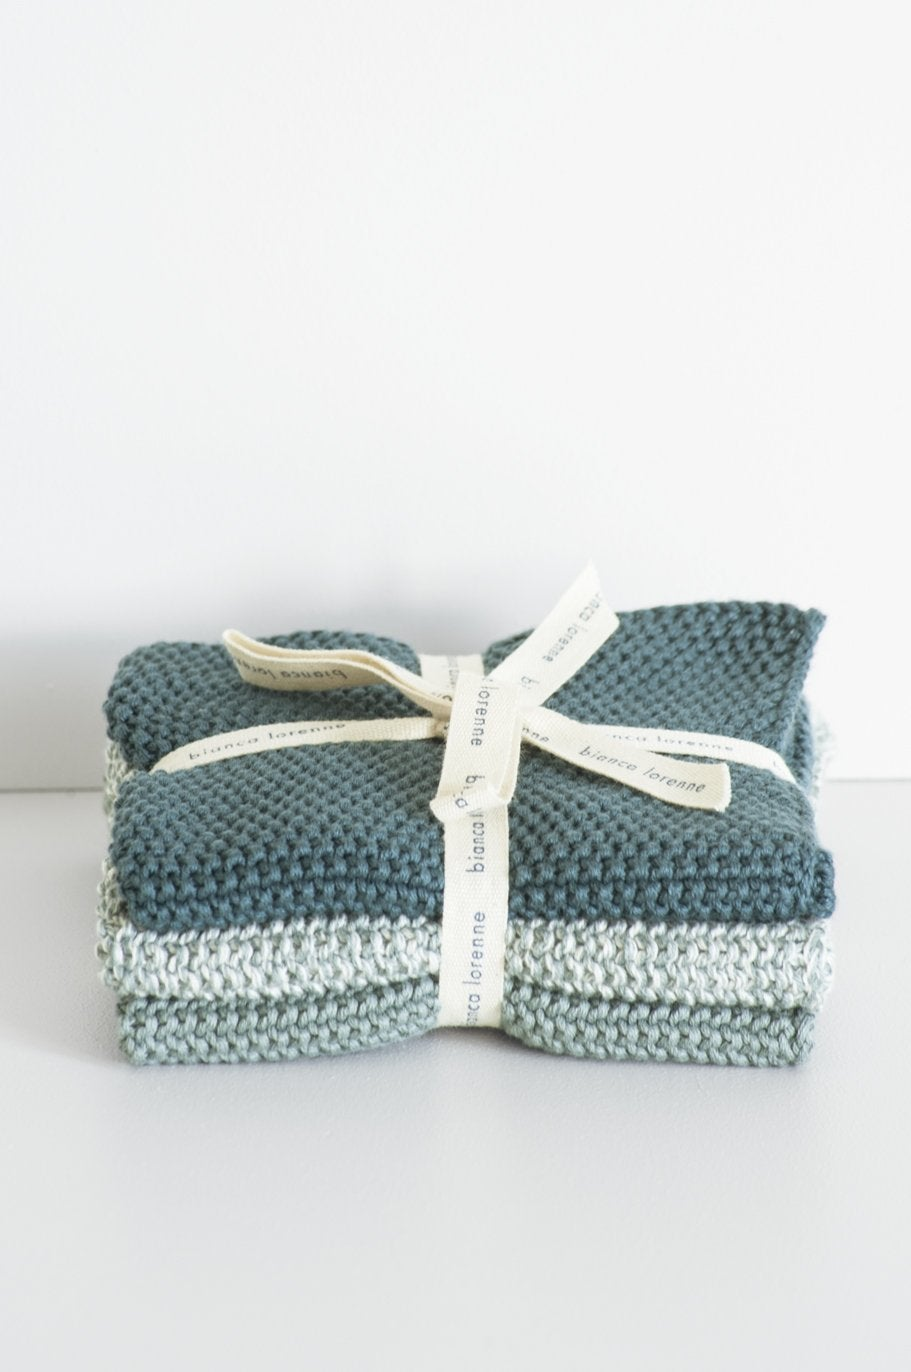 Lavette Teal Wash Cloths -Set of Three